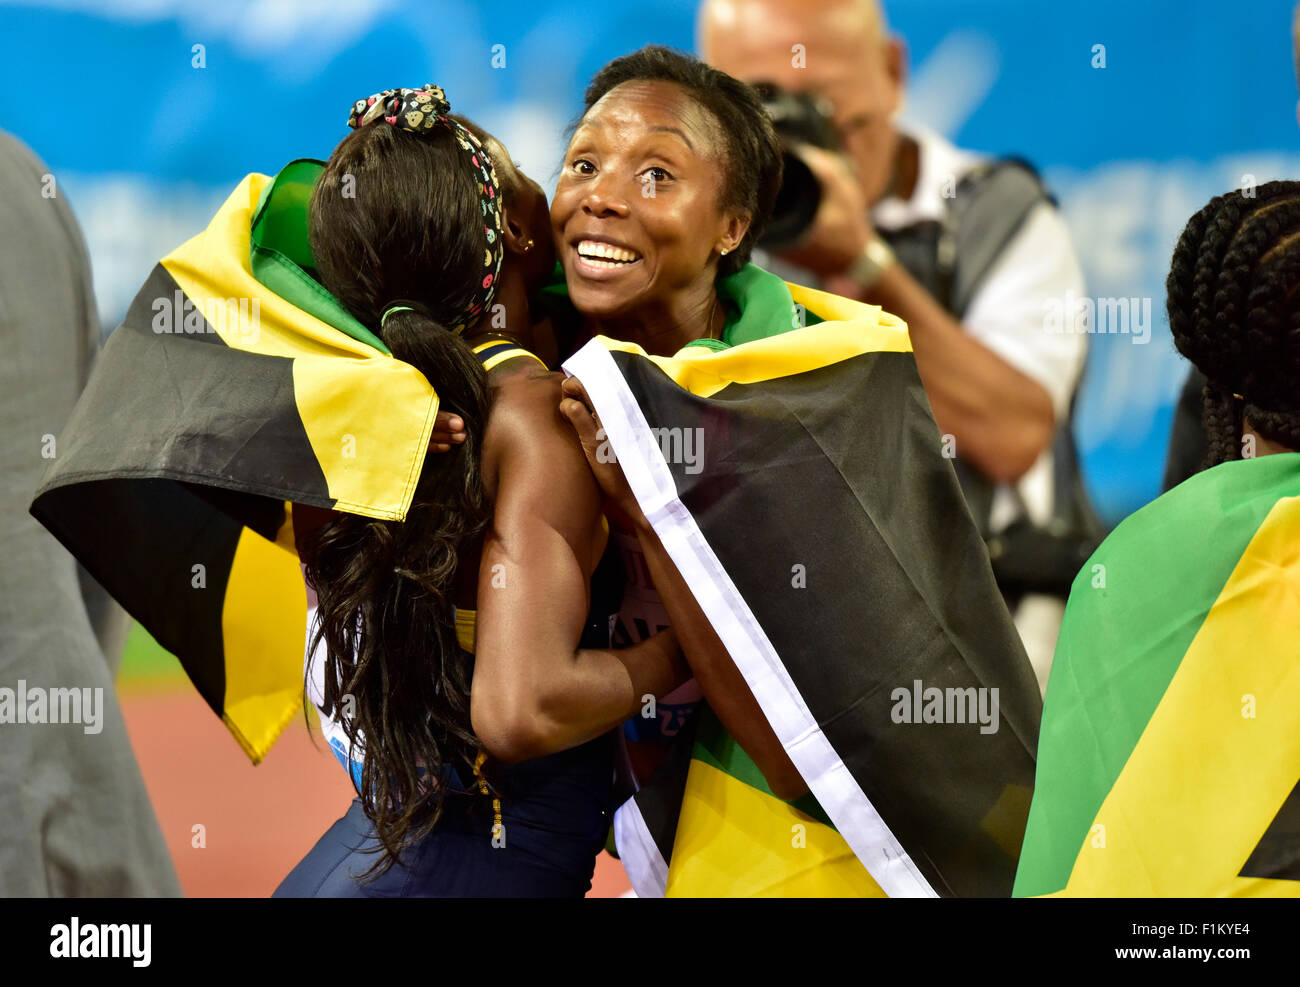 Zurich, Switzerland, 03rd Sep, 2015. Elaine Thompson (left) is being hugged by Natasha Morrison after the victory - Stock Image